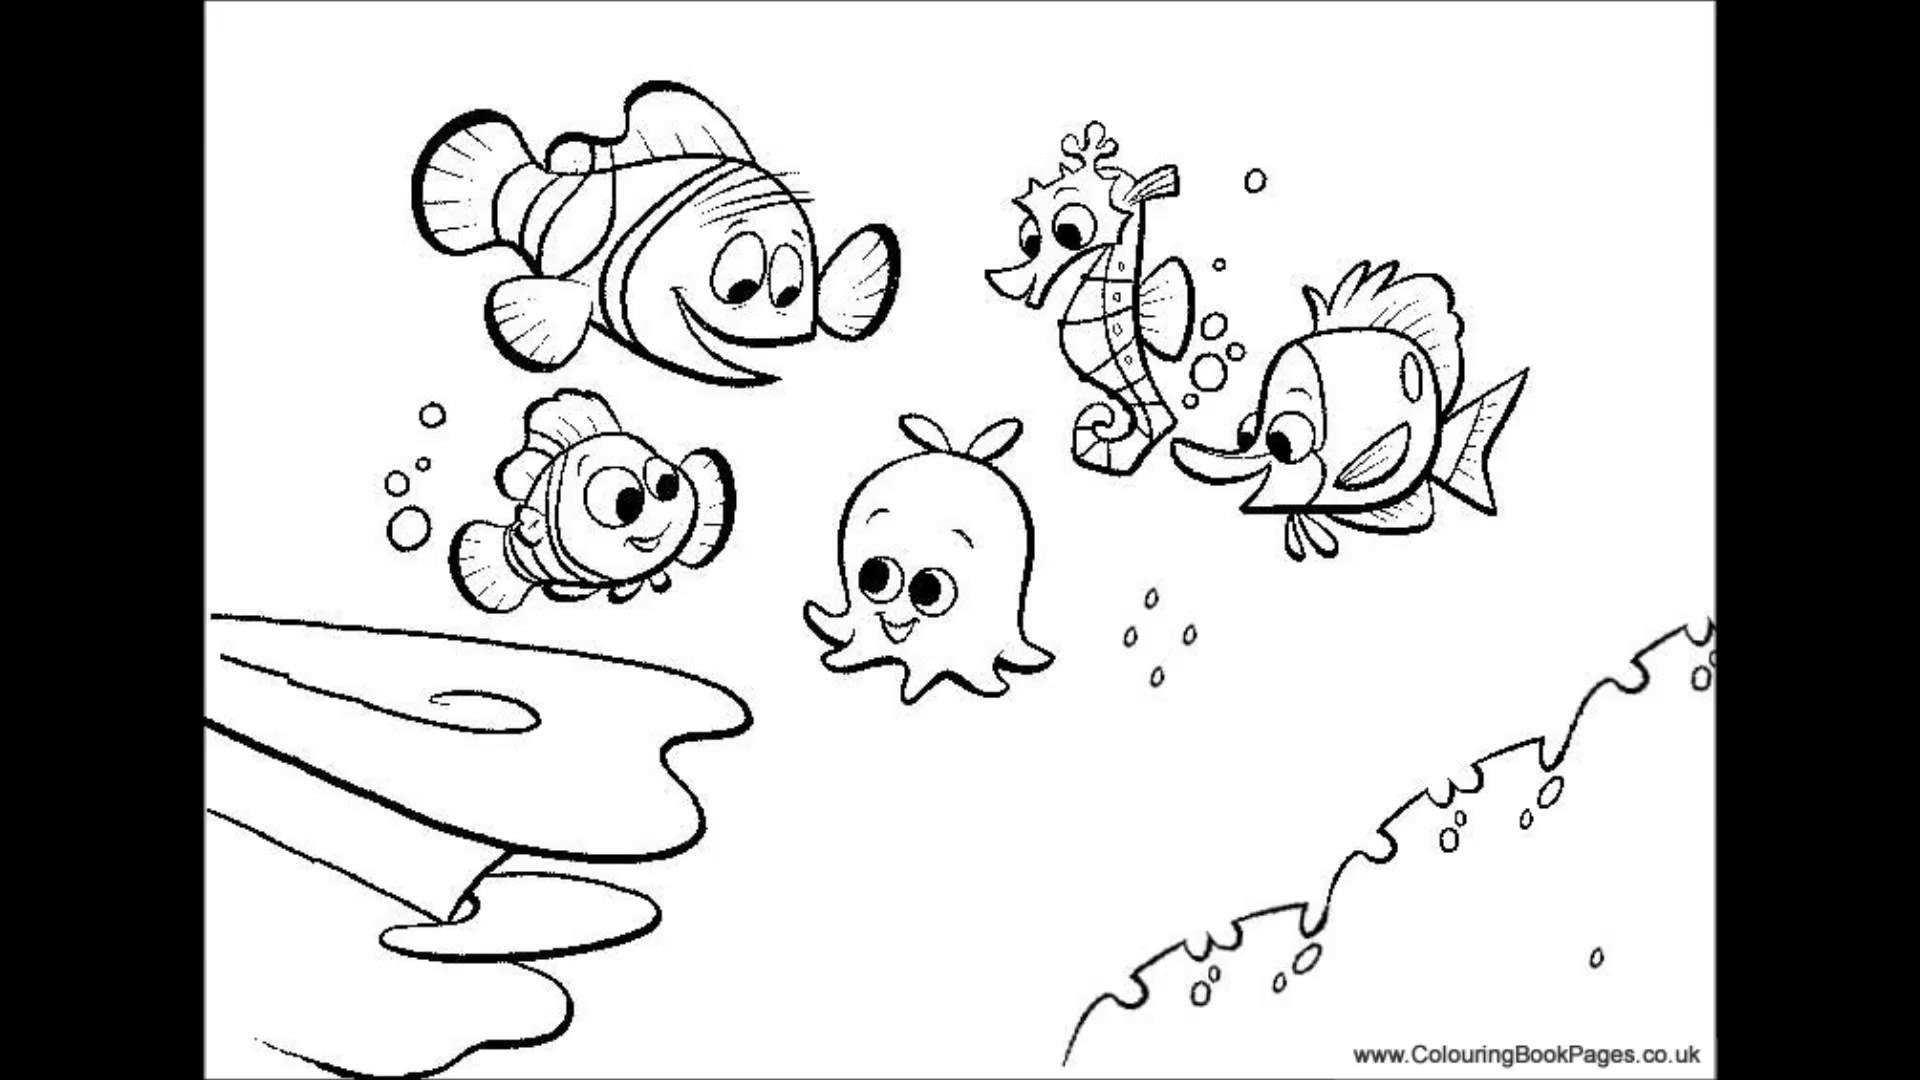 1920x1080 Finding Nemo Coloring Page Pages Book Printable